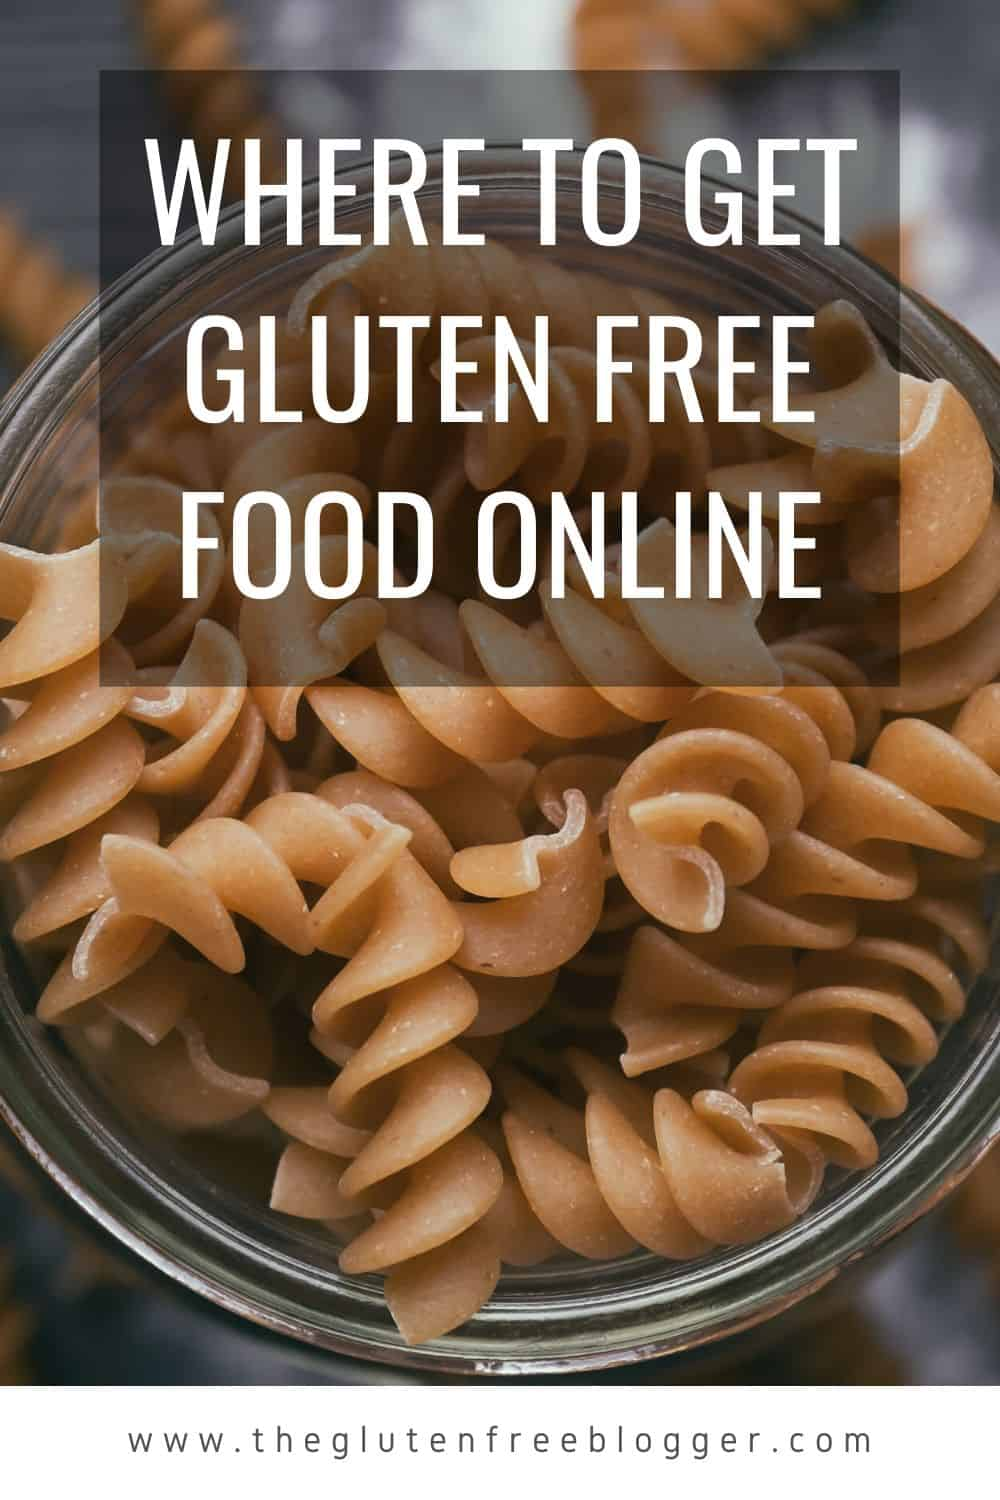 where to get gluten free food online during self-isolation lockdown uk